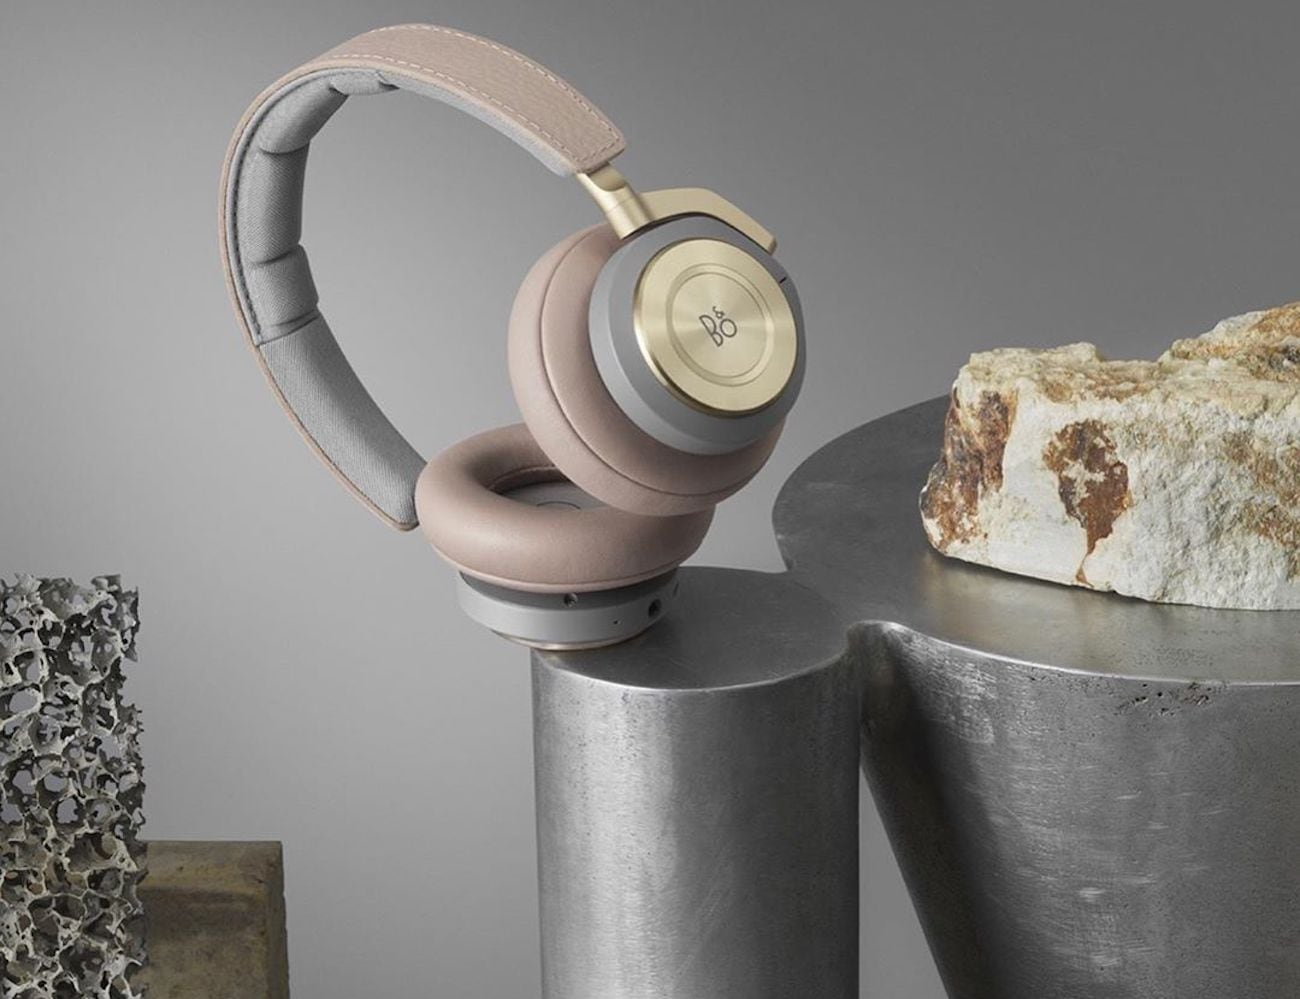 Bang & Olufsen Beoplay H9 Touch-Interface Headphones let you quickly adjust your music loading=